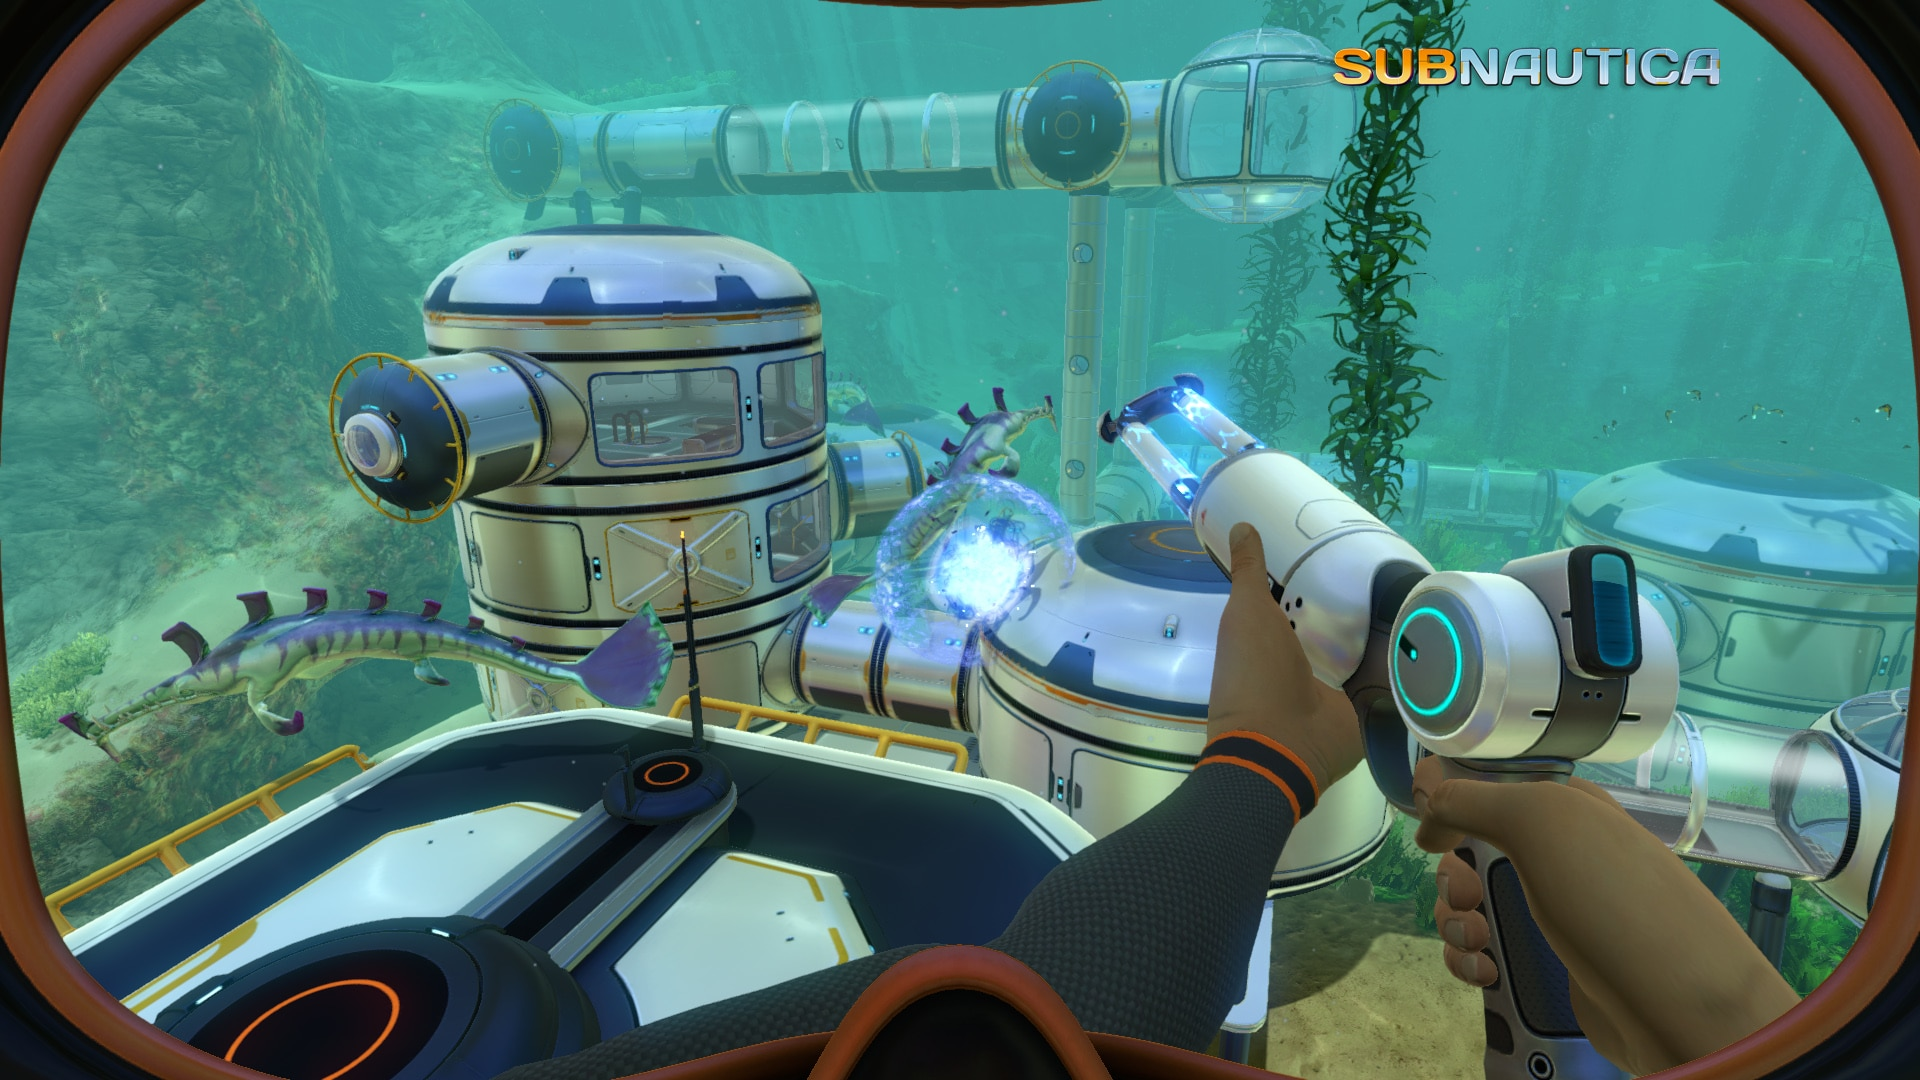 Subnautica Steam Gift GLOBAL - 2